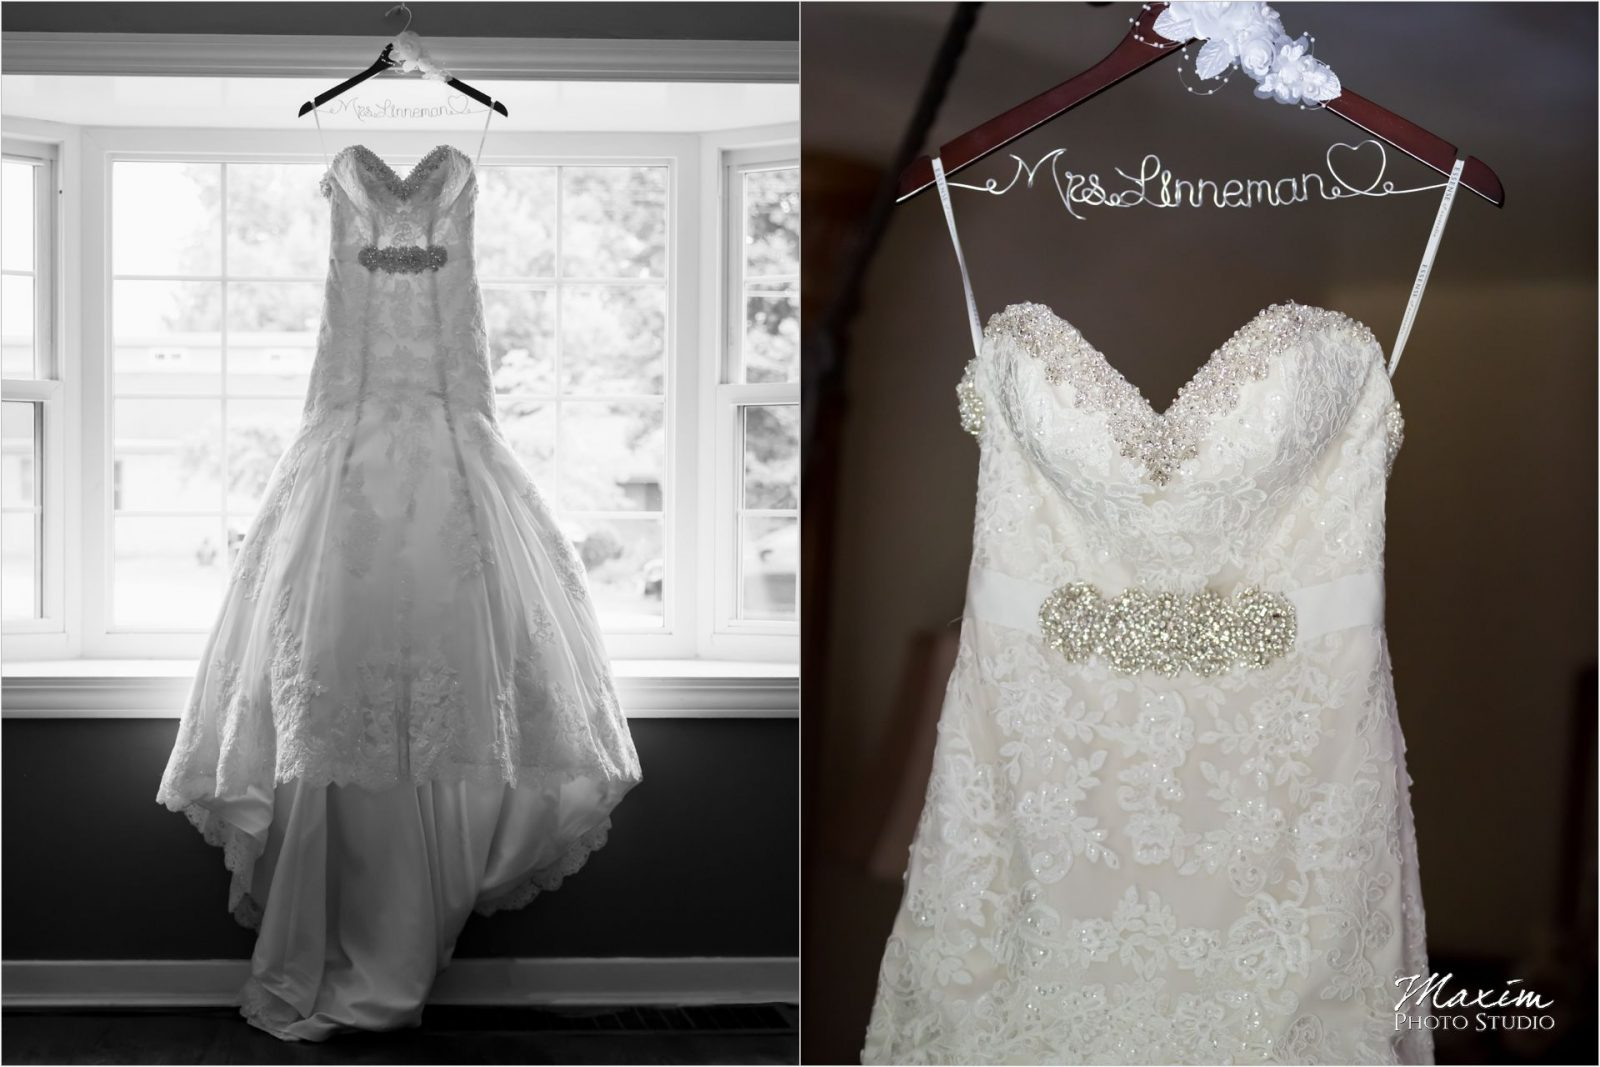 Fabulous Bridal Cincinnati Wedding dress